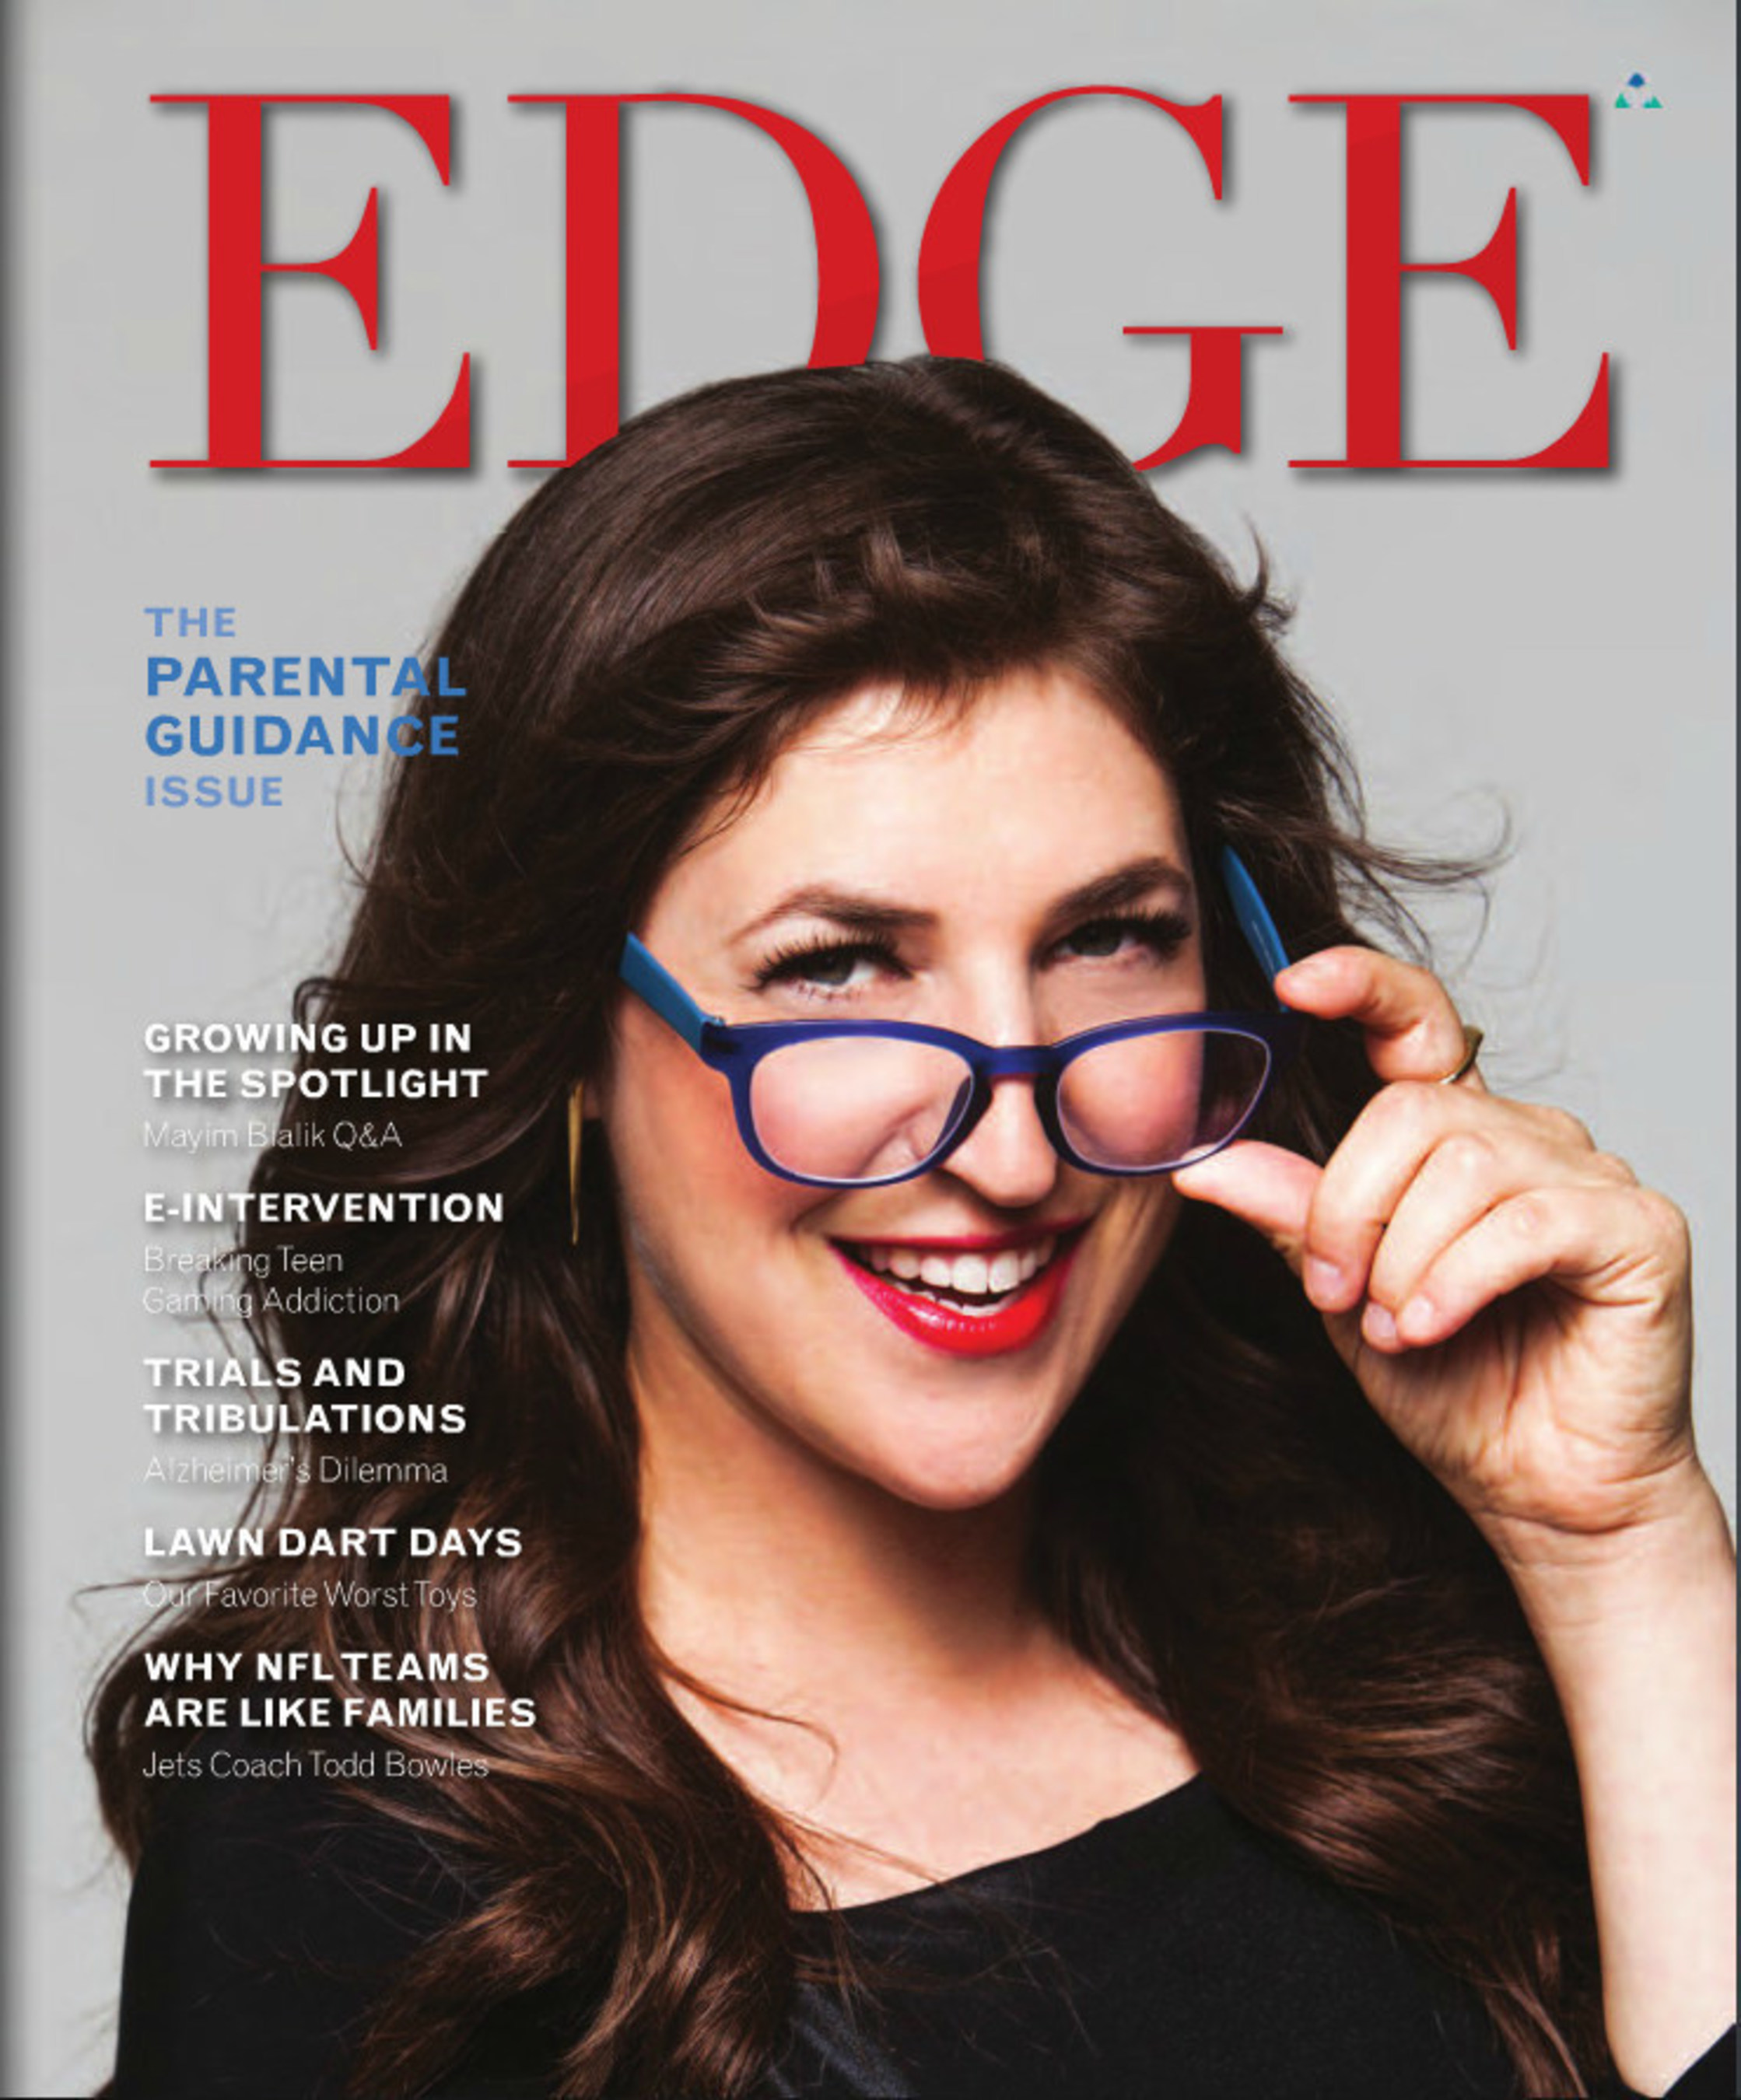 Big Bang Theory Star Mayim Bialik Graces Cover of EDGE Magazine's 2015 'Parental Guidance' Issue